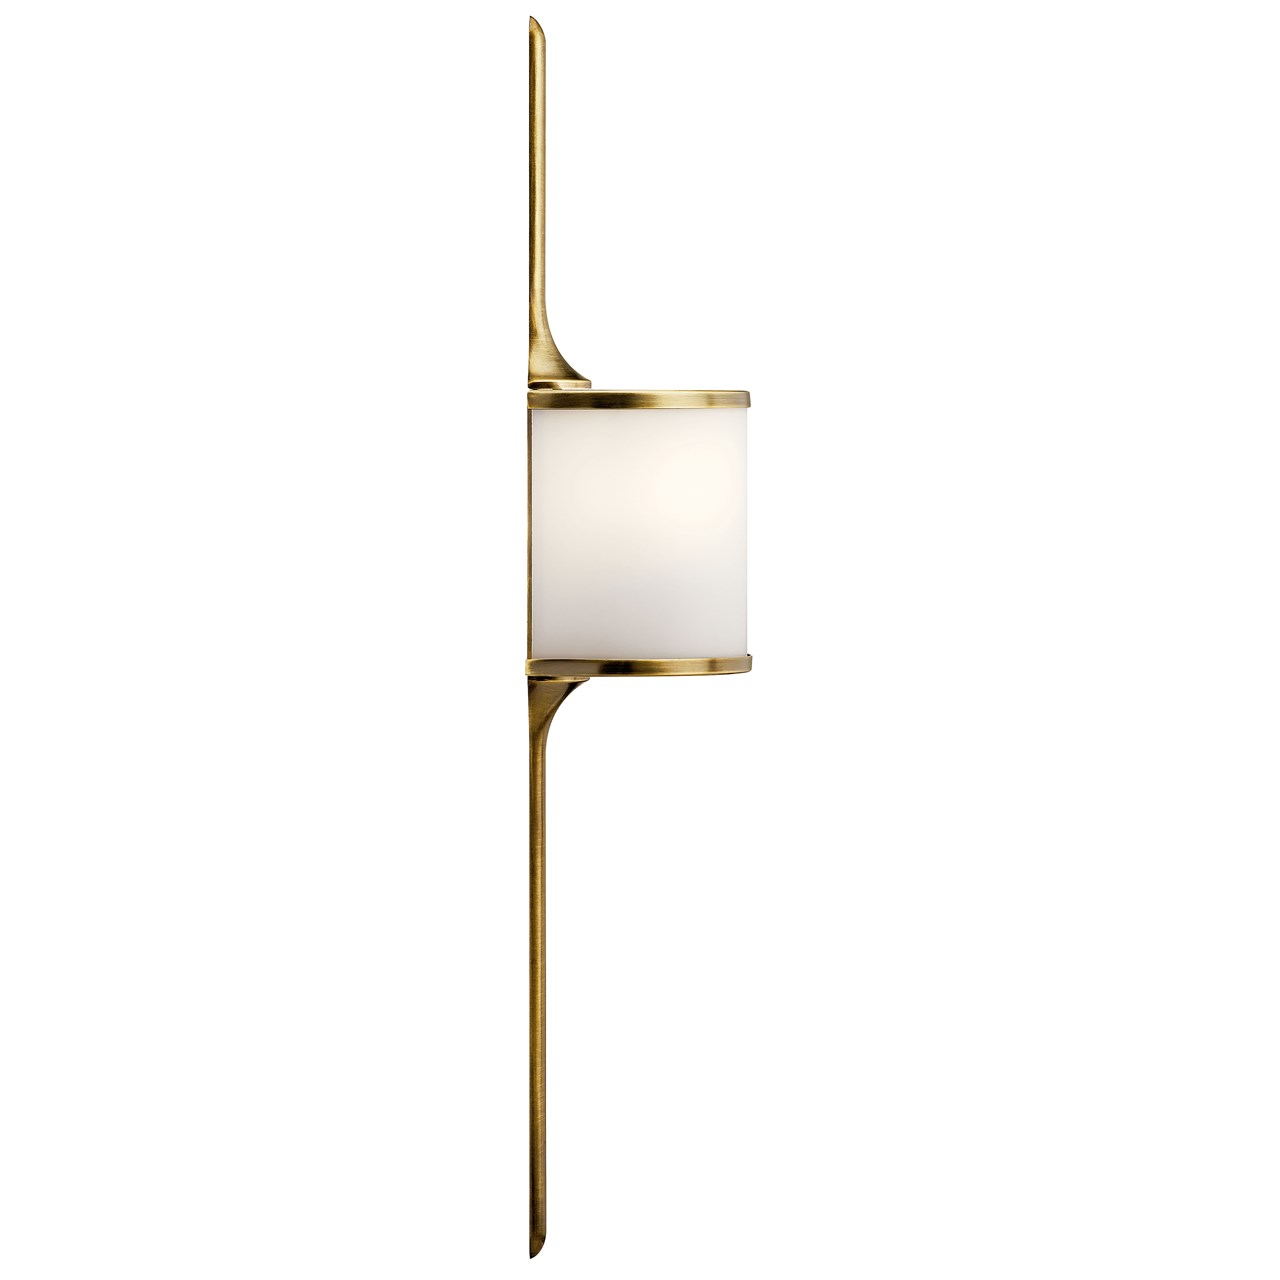 Mona 2 Light Halogen Wall Sconce Natural Brass